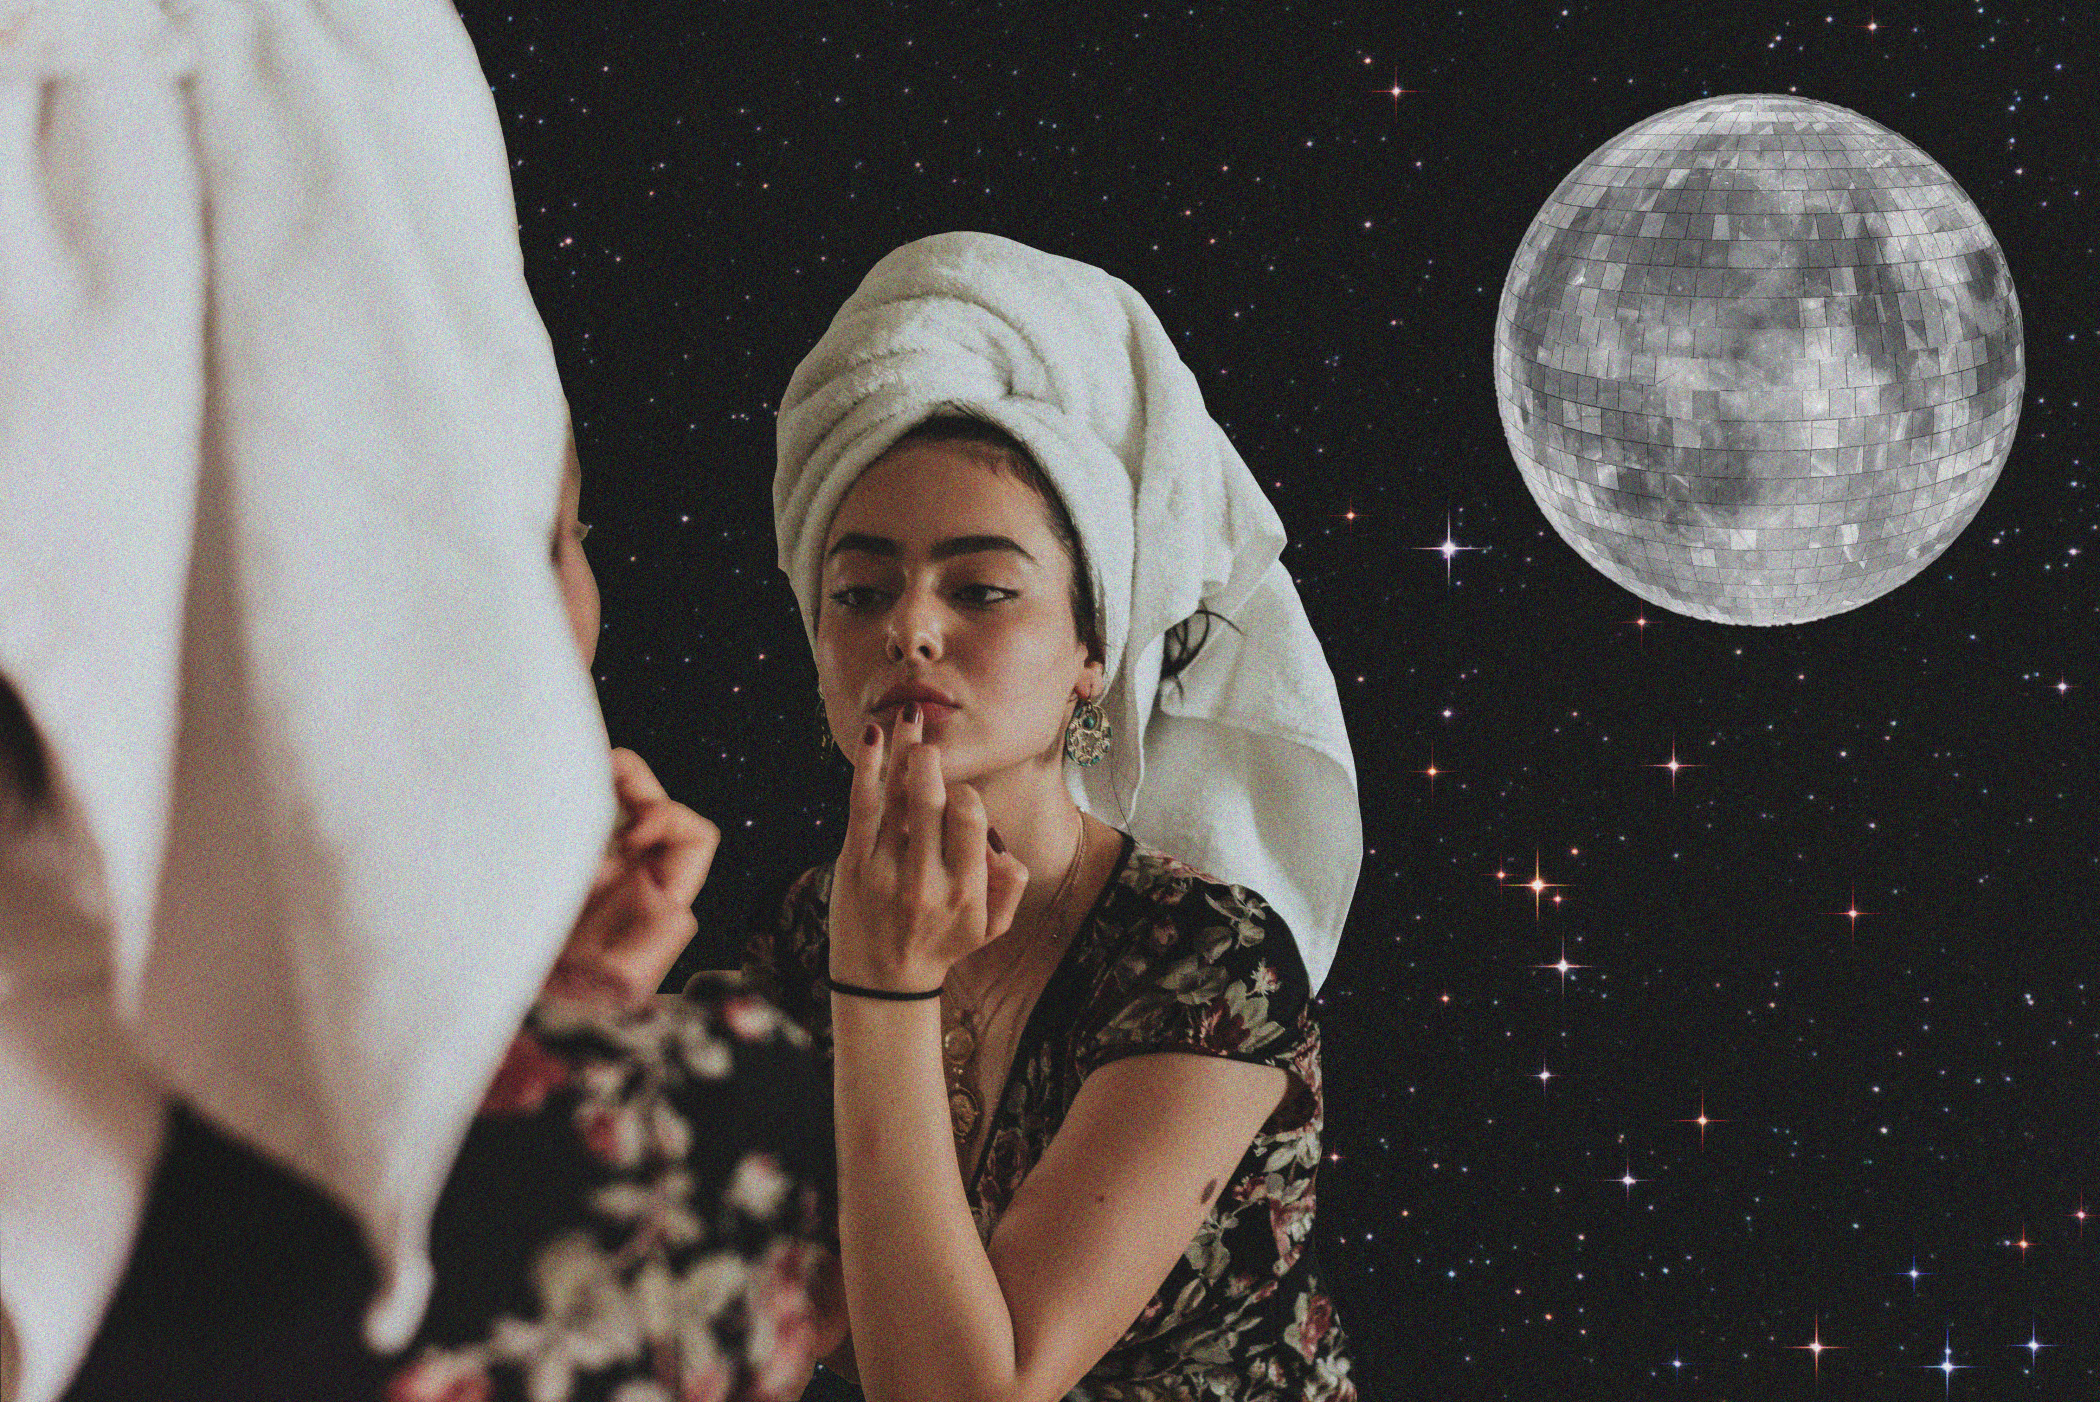 Woman staring in reflection with disco moon behind her